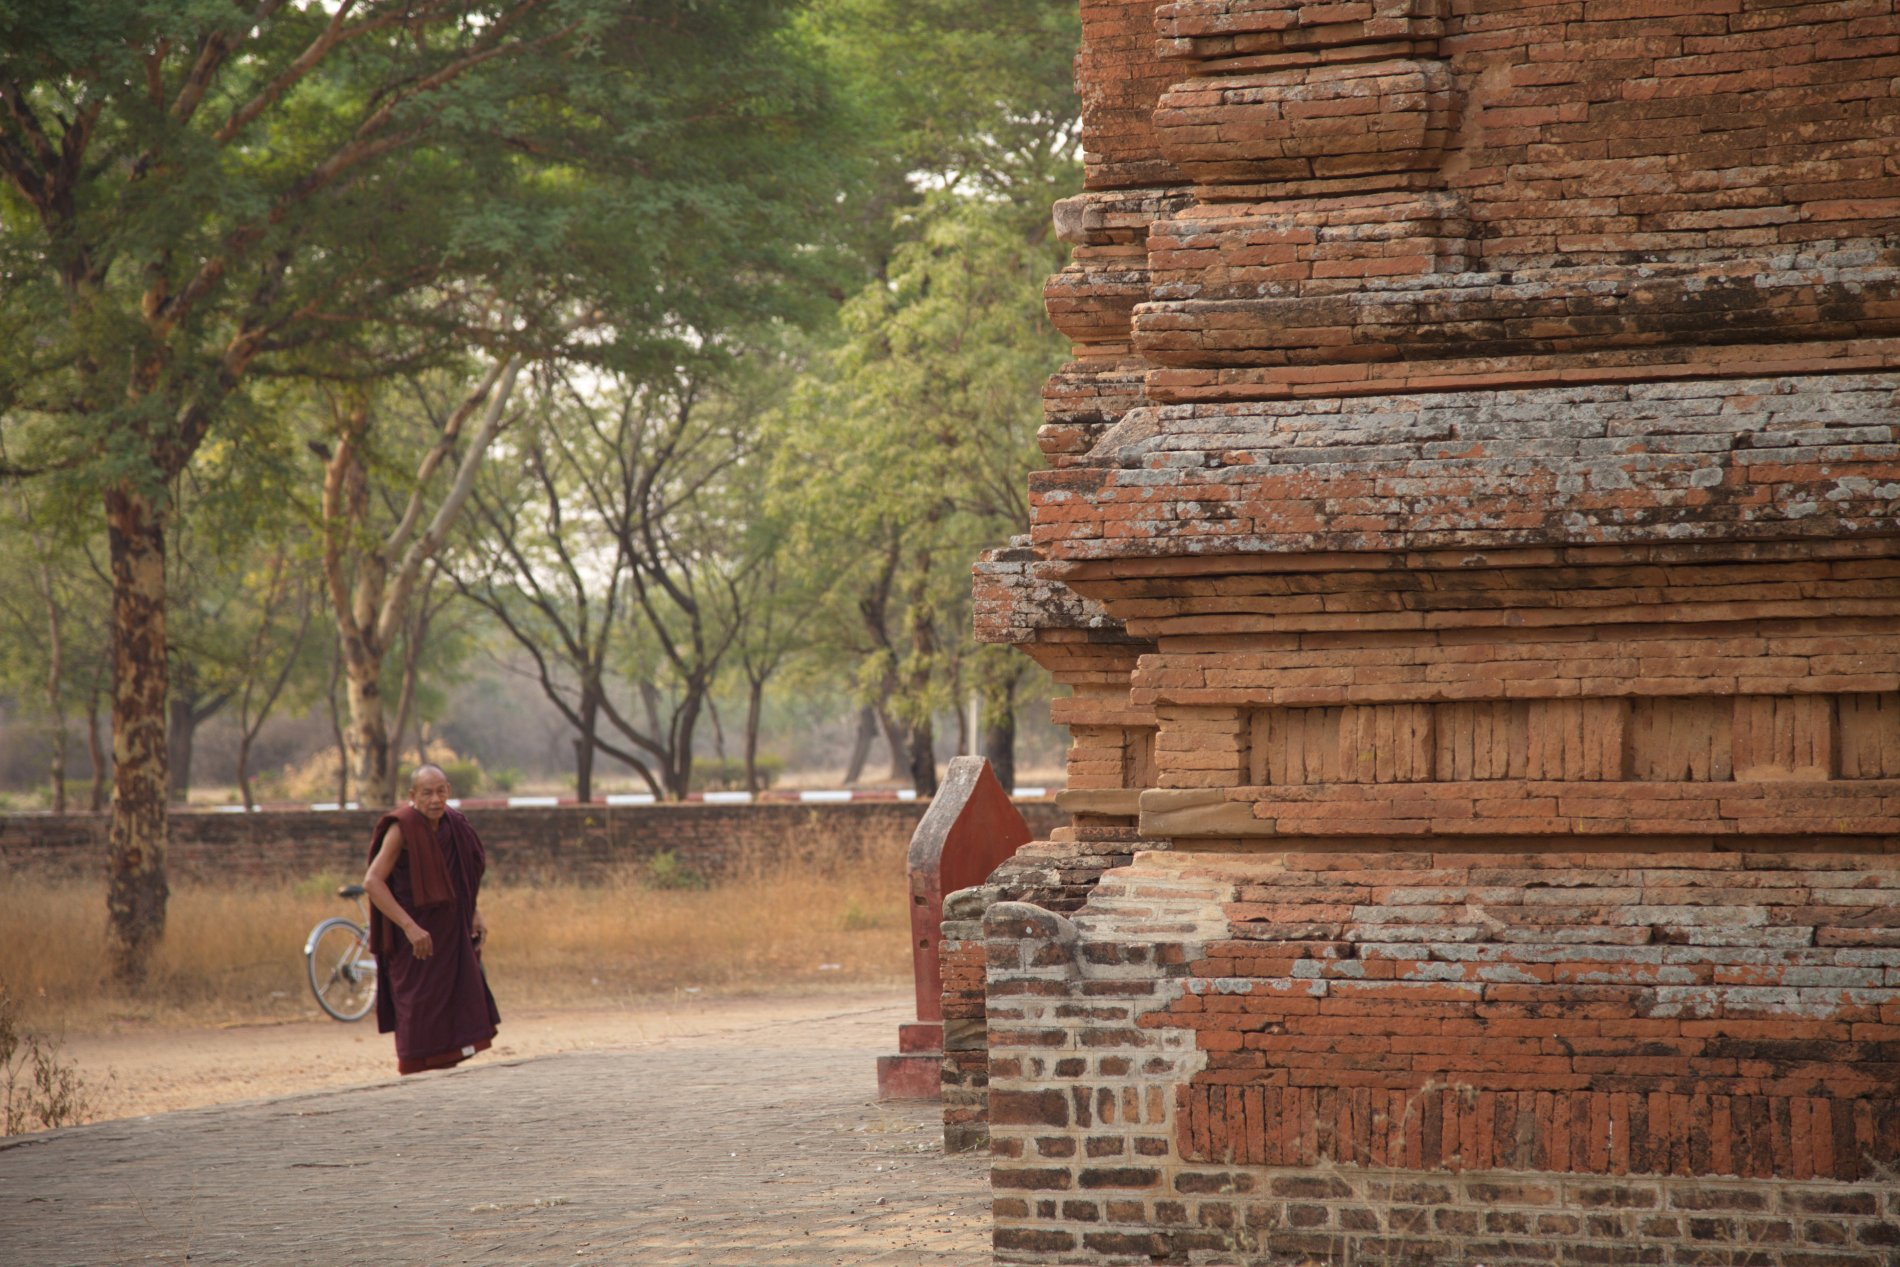 Bagan_061.jpg-commment